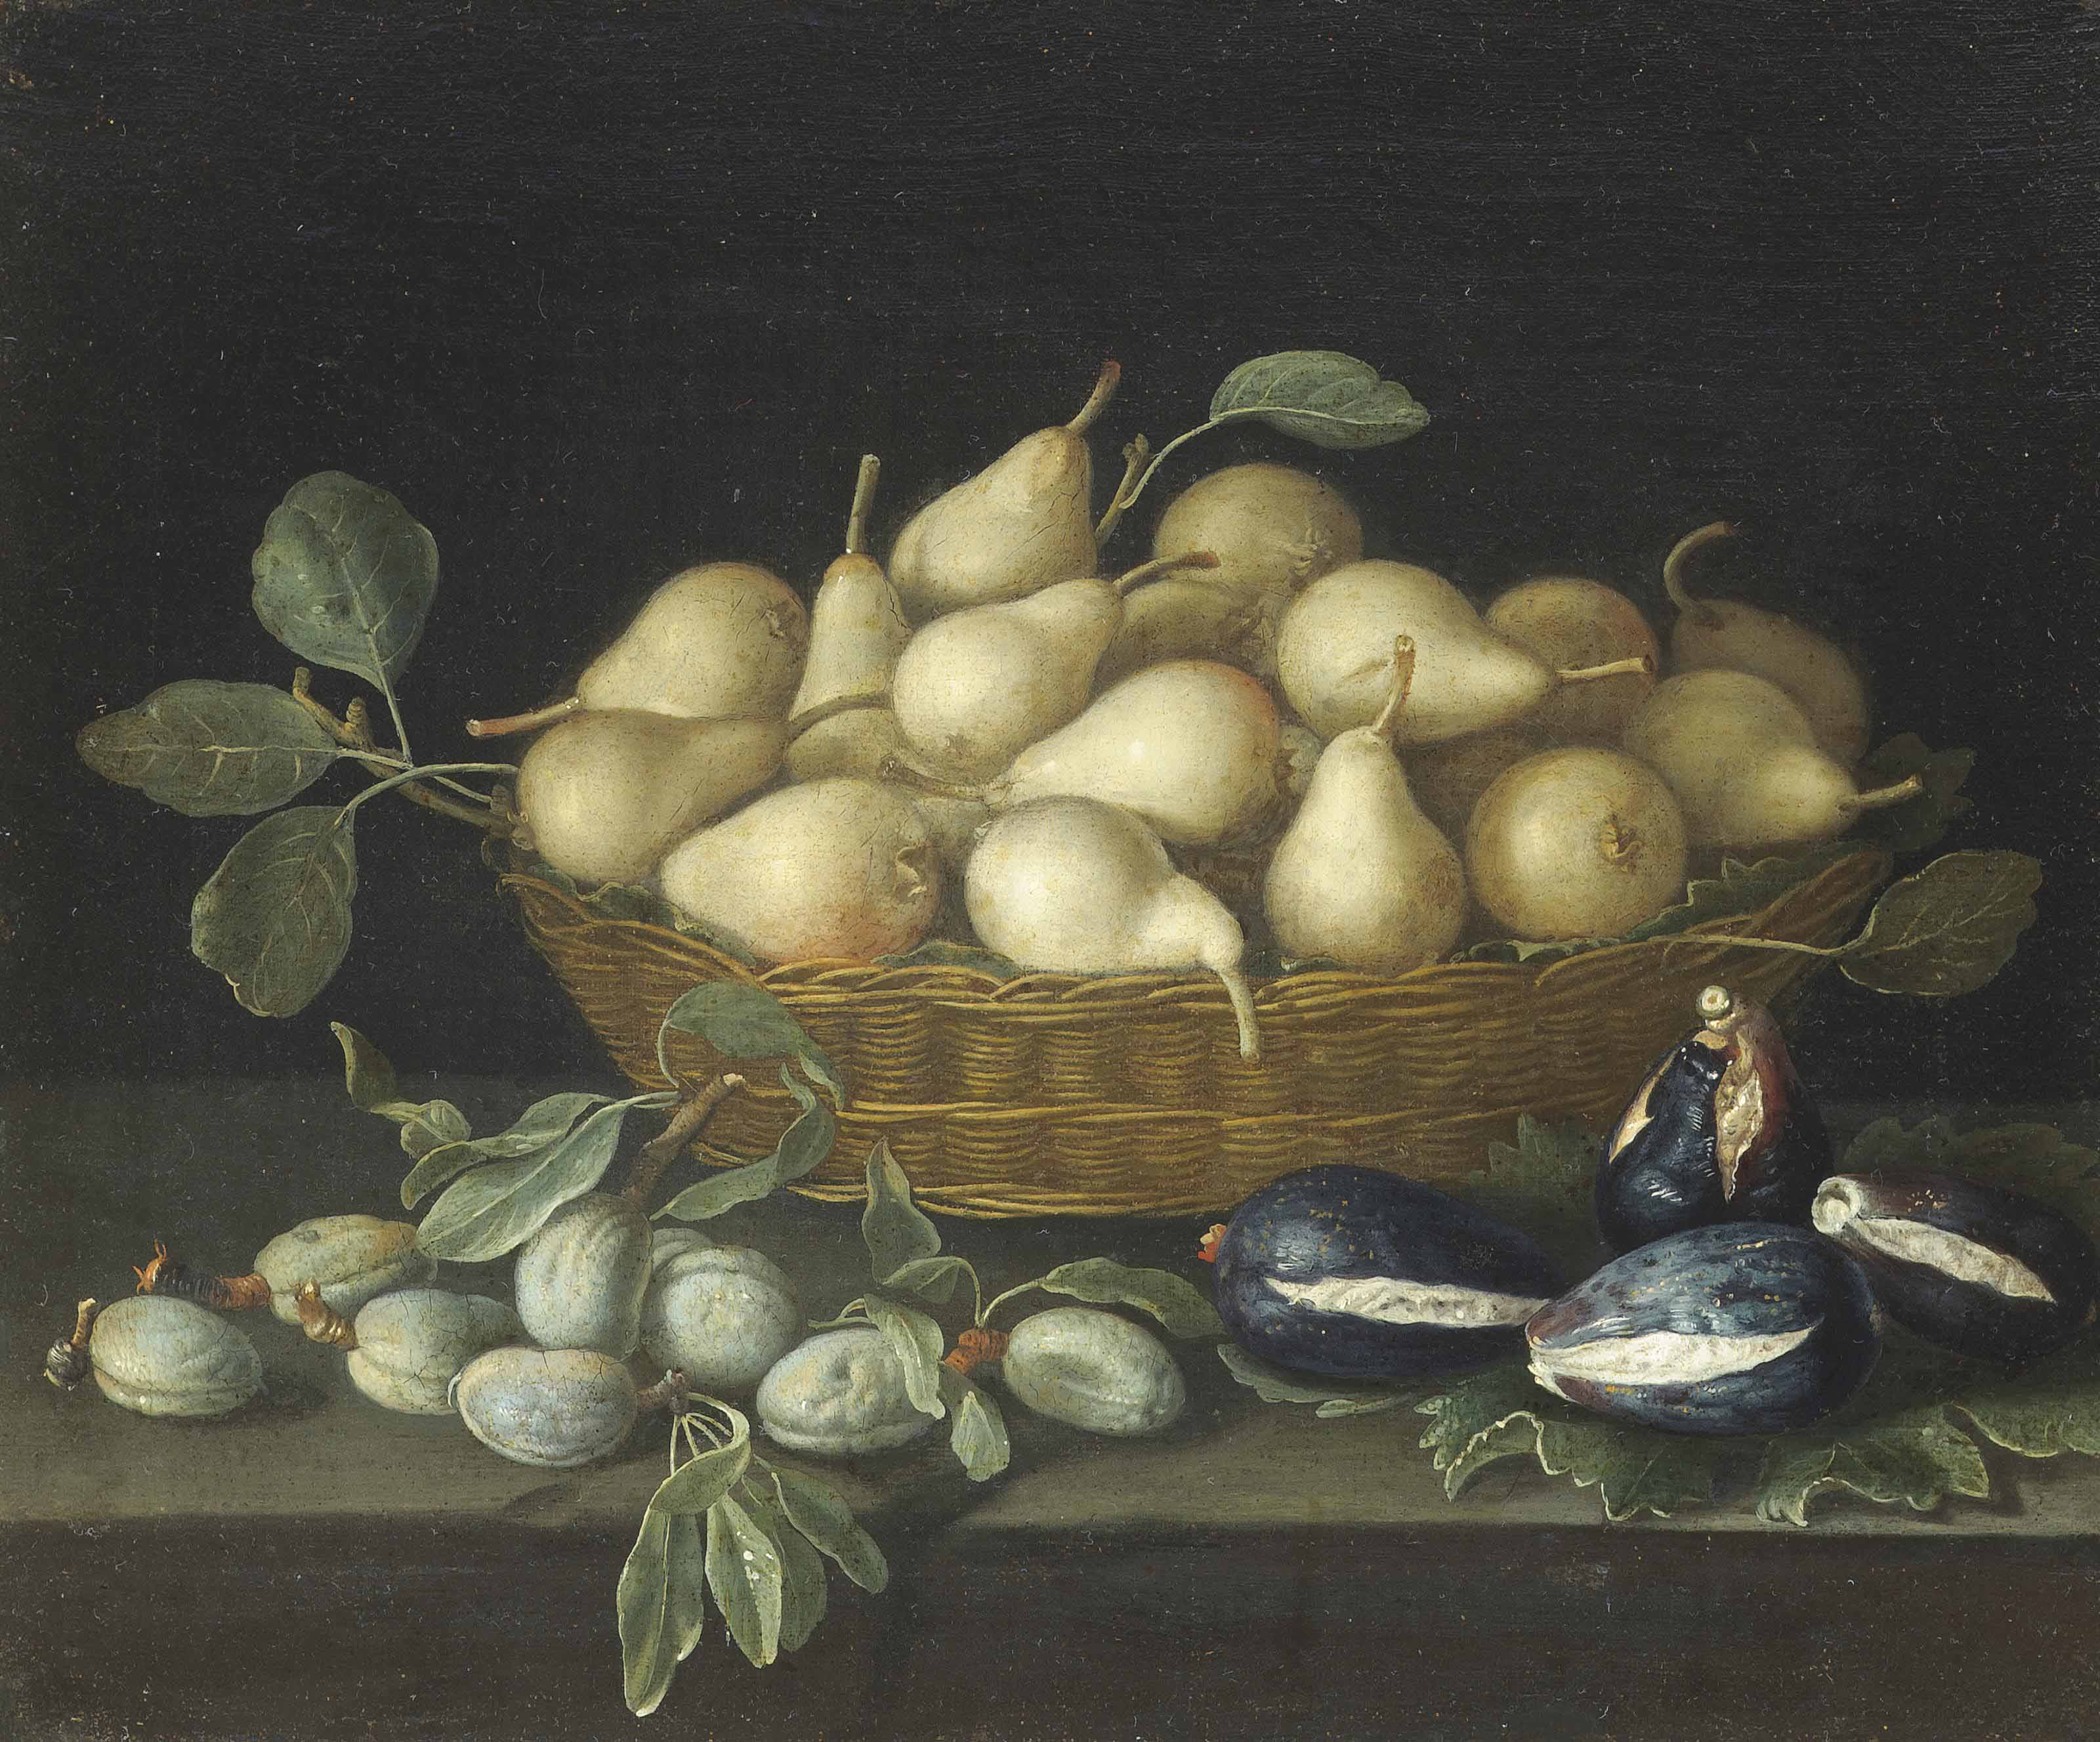 https://www.christies.com/img/LotImages/2014/CSK/2014_CSK_05660_0054_000(attributed_to_francois_garnier_pears_in_a_wicker_basket_with_almonds_a).jpg